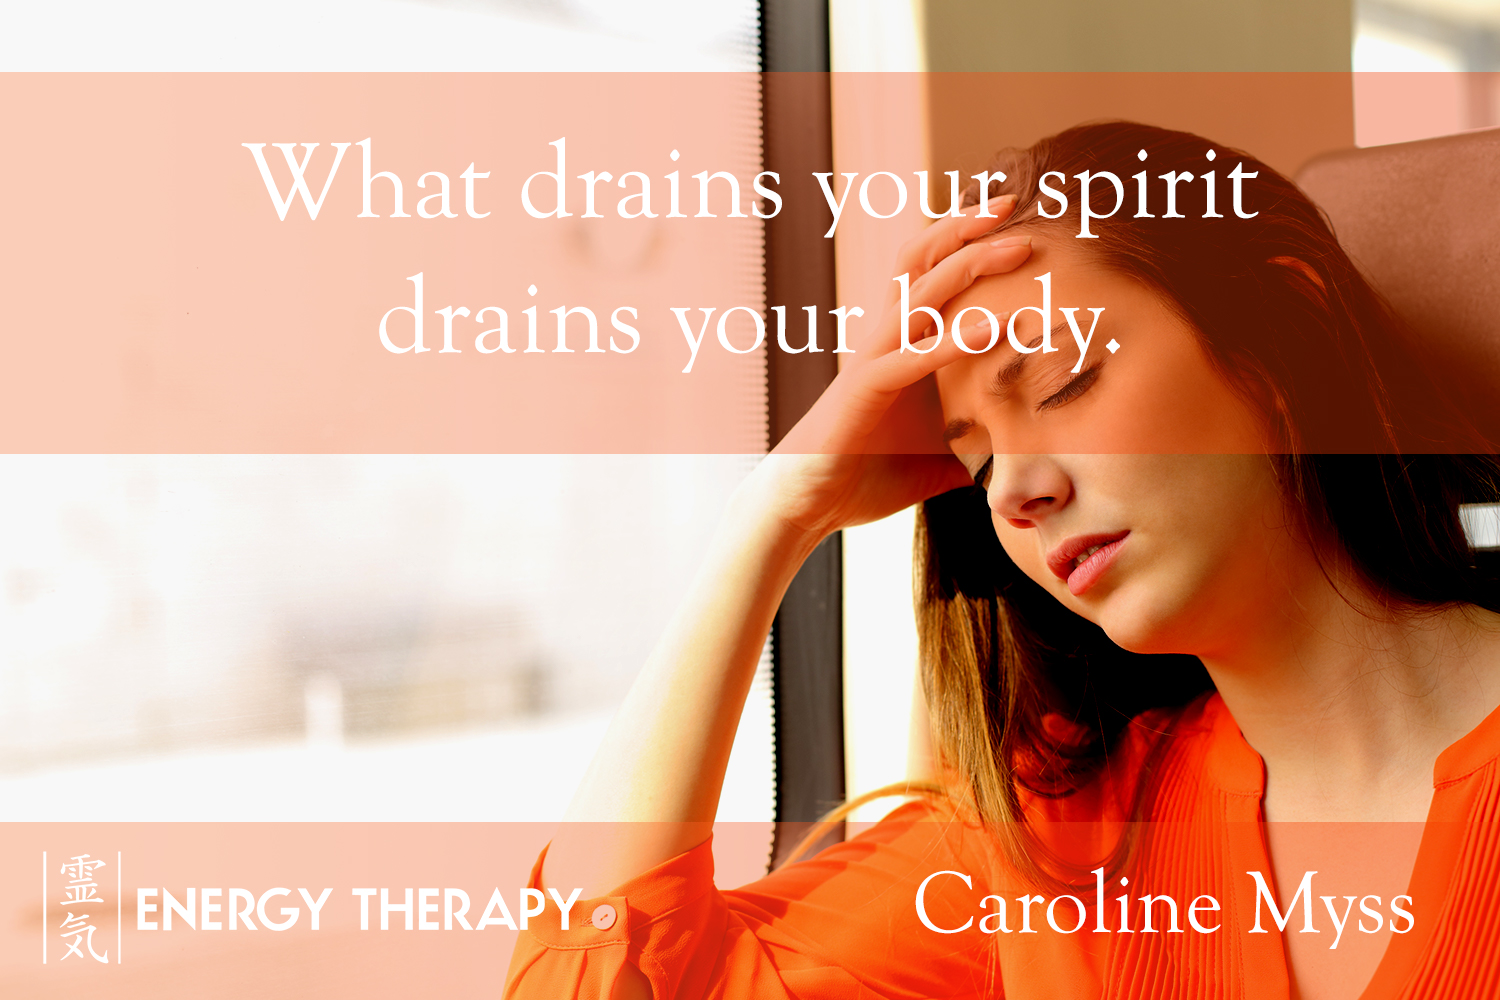 What drains your spirit drains your body...